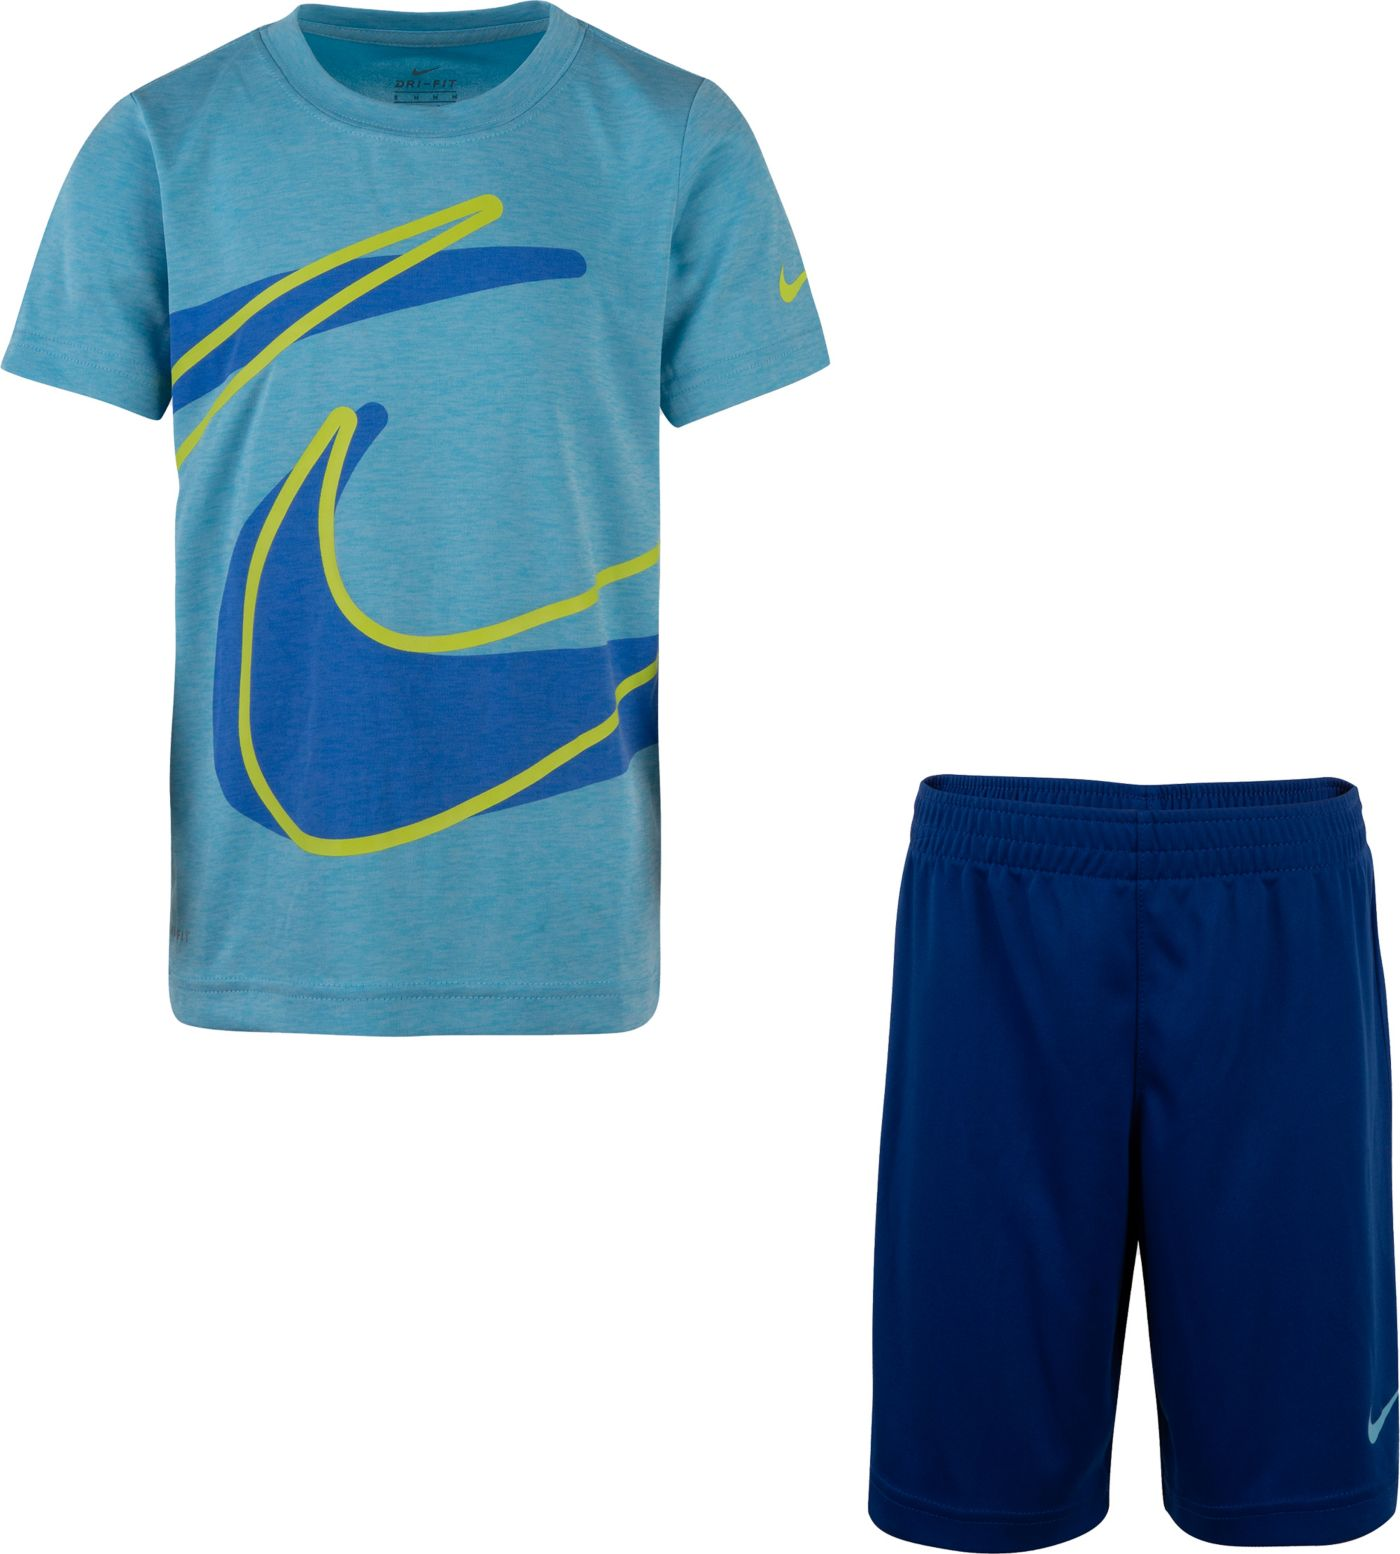 Nike Little Boys' Dri-FIT T-Shirt and Short Set